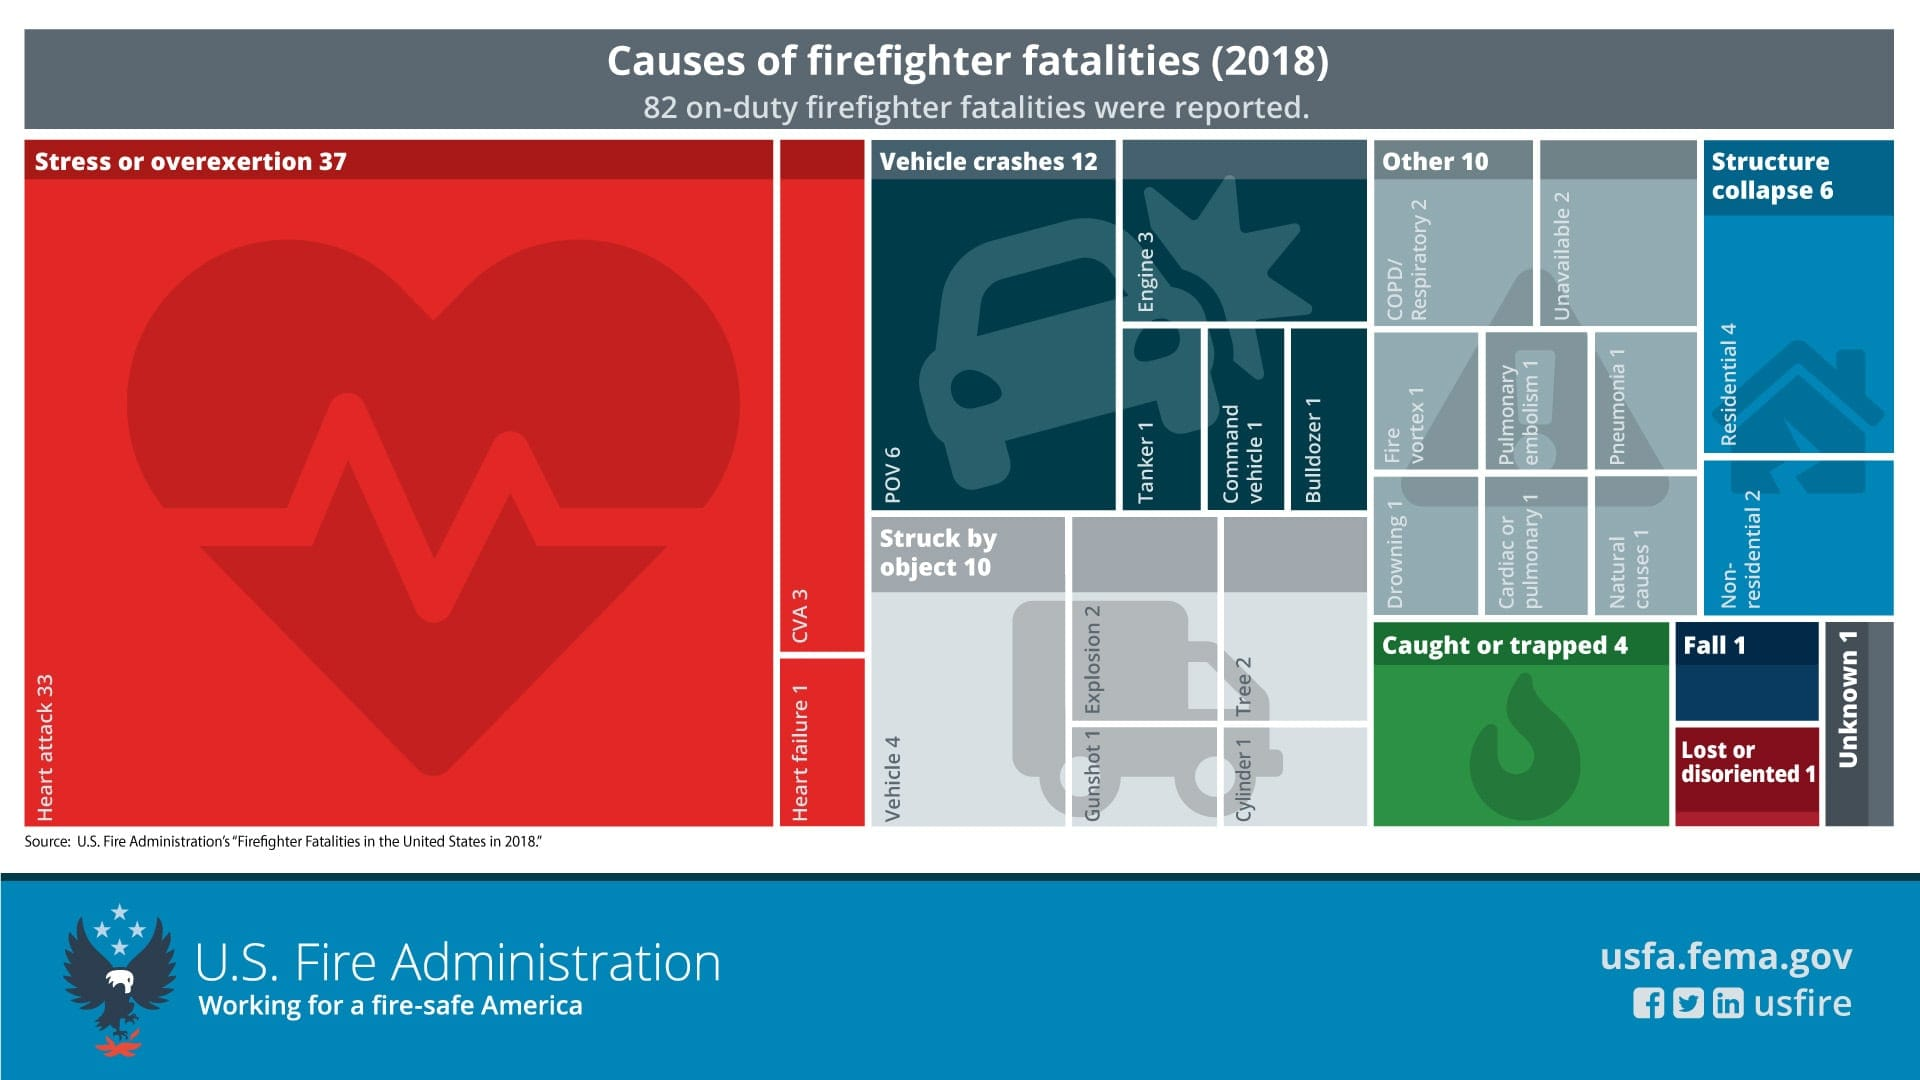 Annual Report On Firefighter Fatalities In The United States